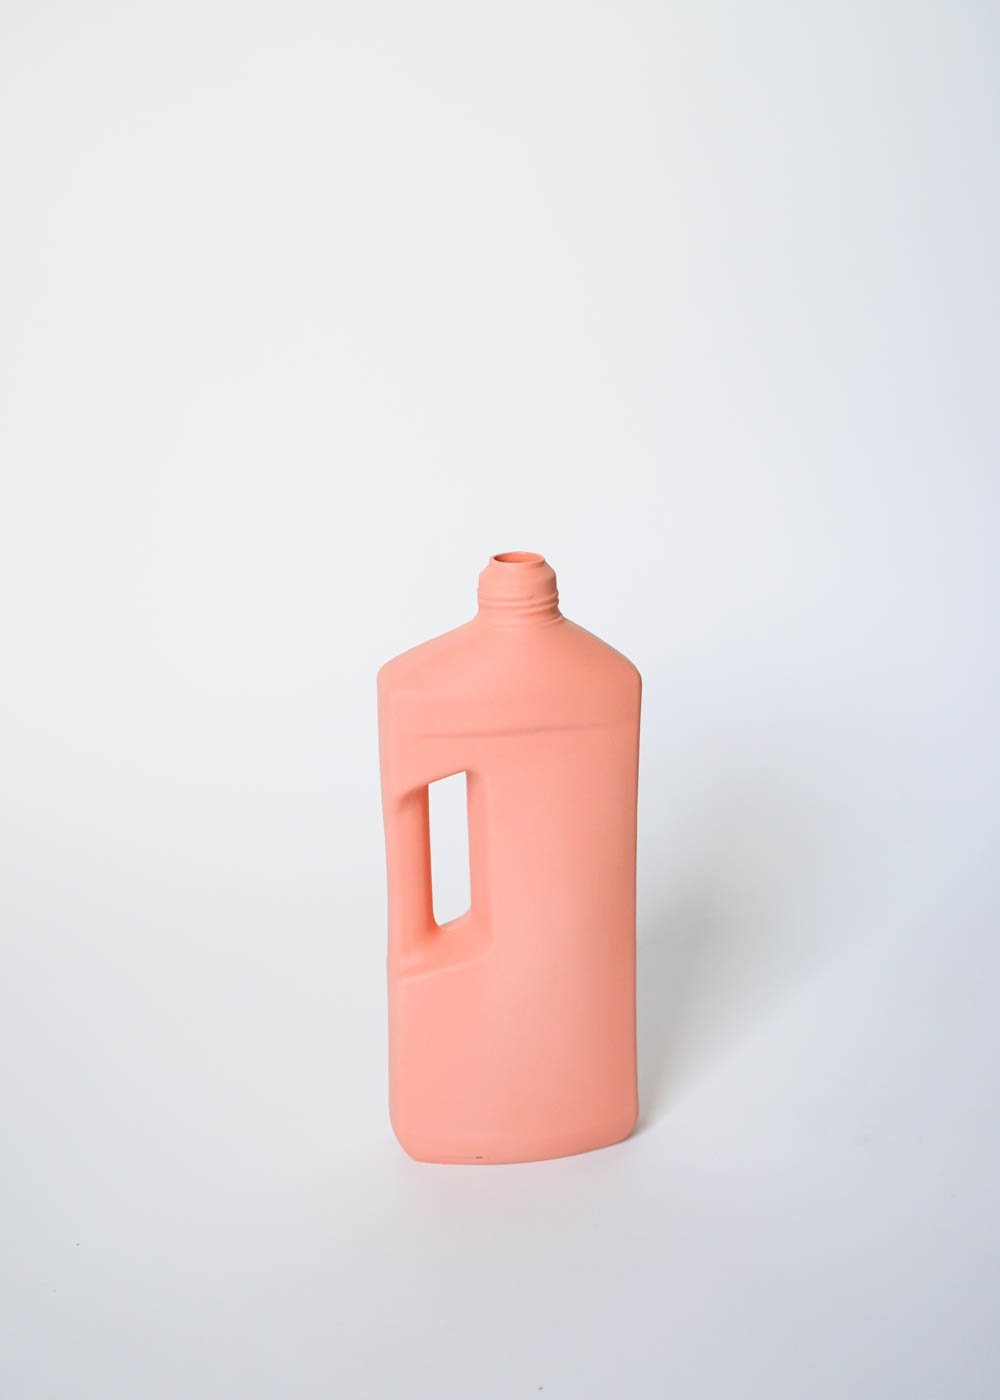 Motor Oil Bottle Vase-1